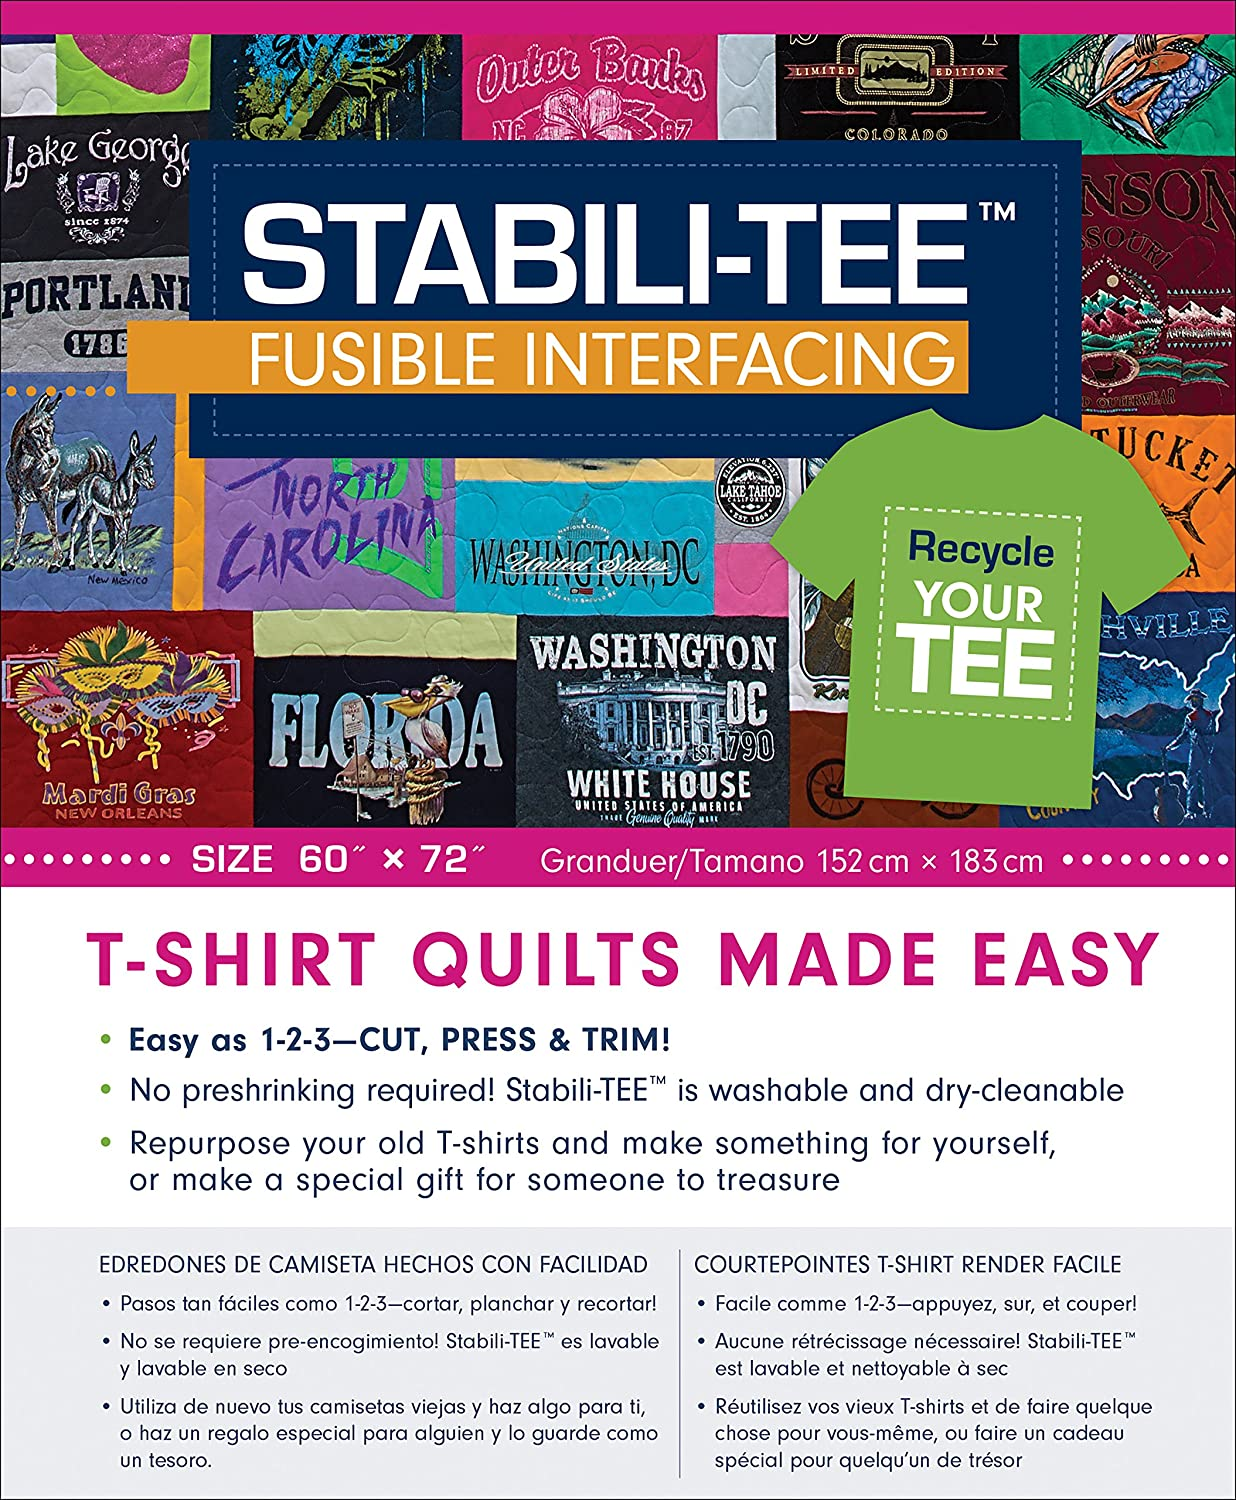 STABILI-TEE Fusible Interfacing Pack Polyester 100% 60